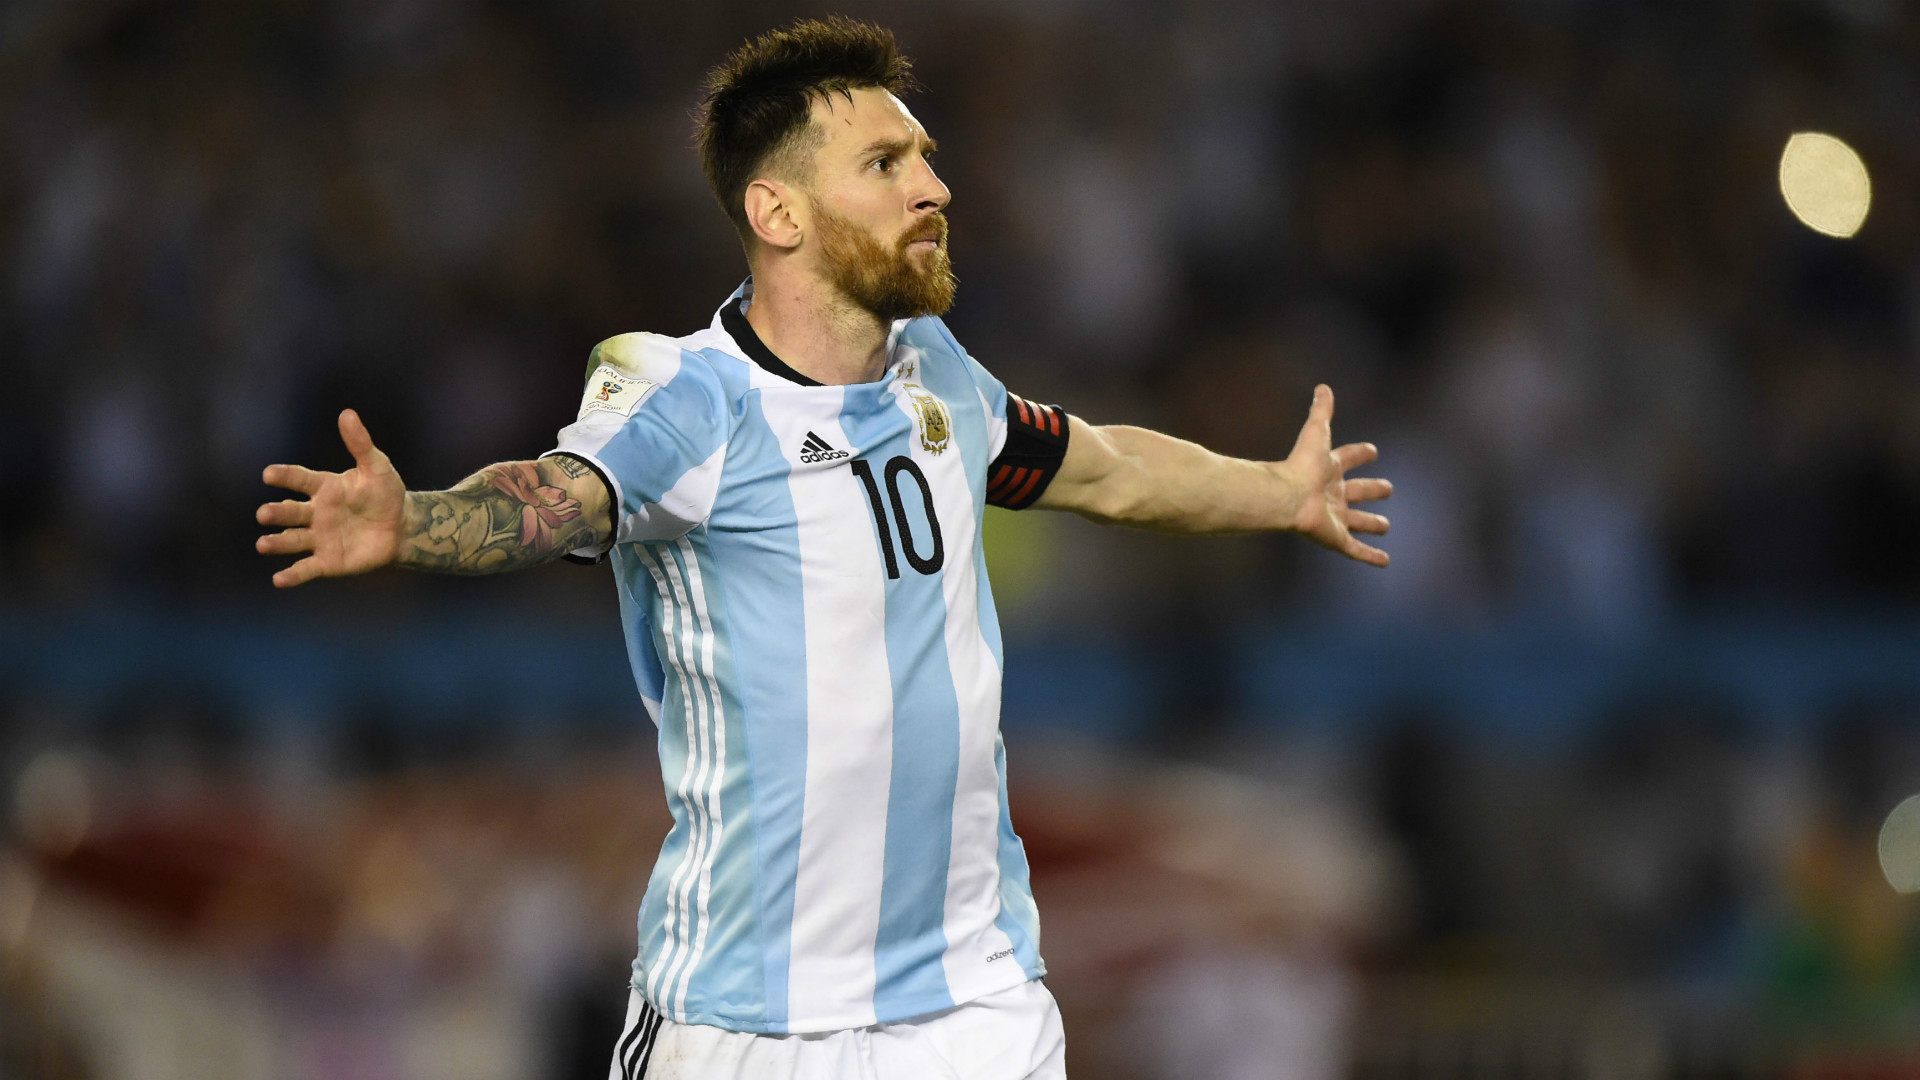 argentina-world-cup-qualifying_ssto8h8o69xrzppp8mtcade5